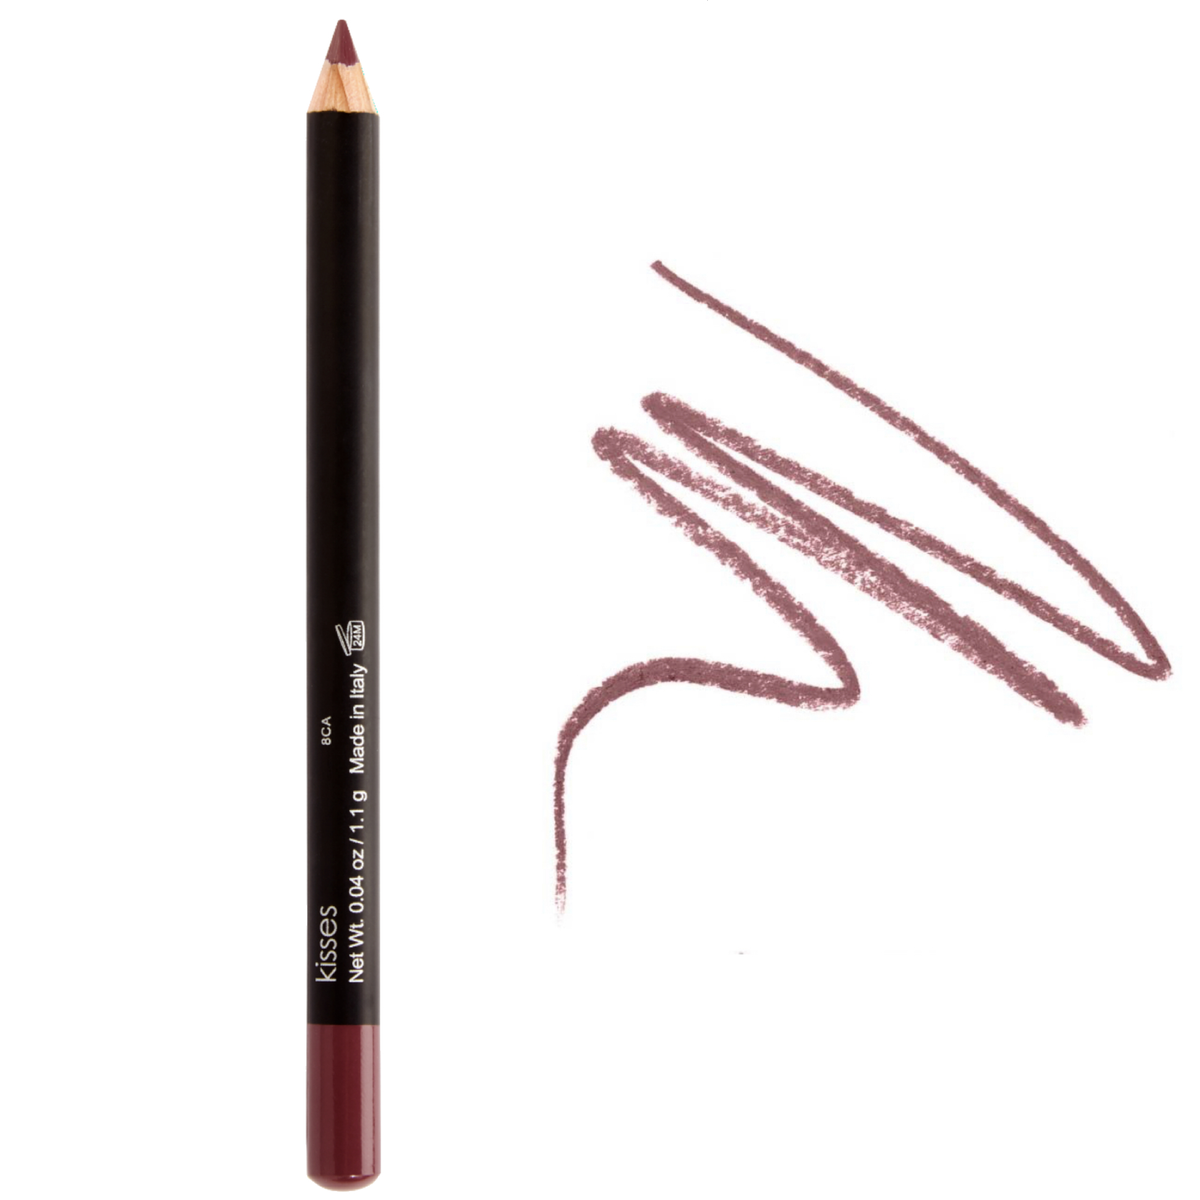 Lip Pencil Liner Lexi Noel Beauty - lexinoelbeauty.com